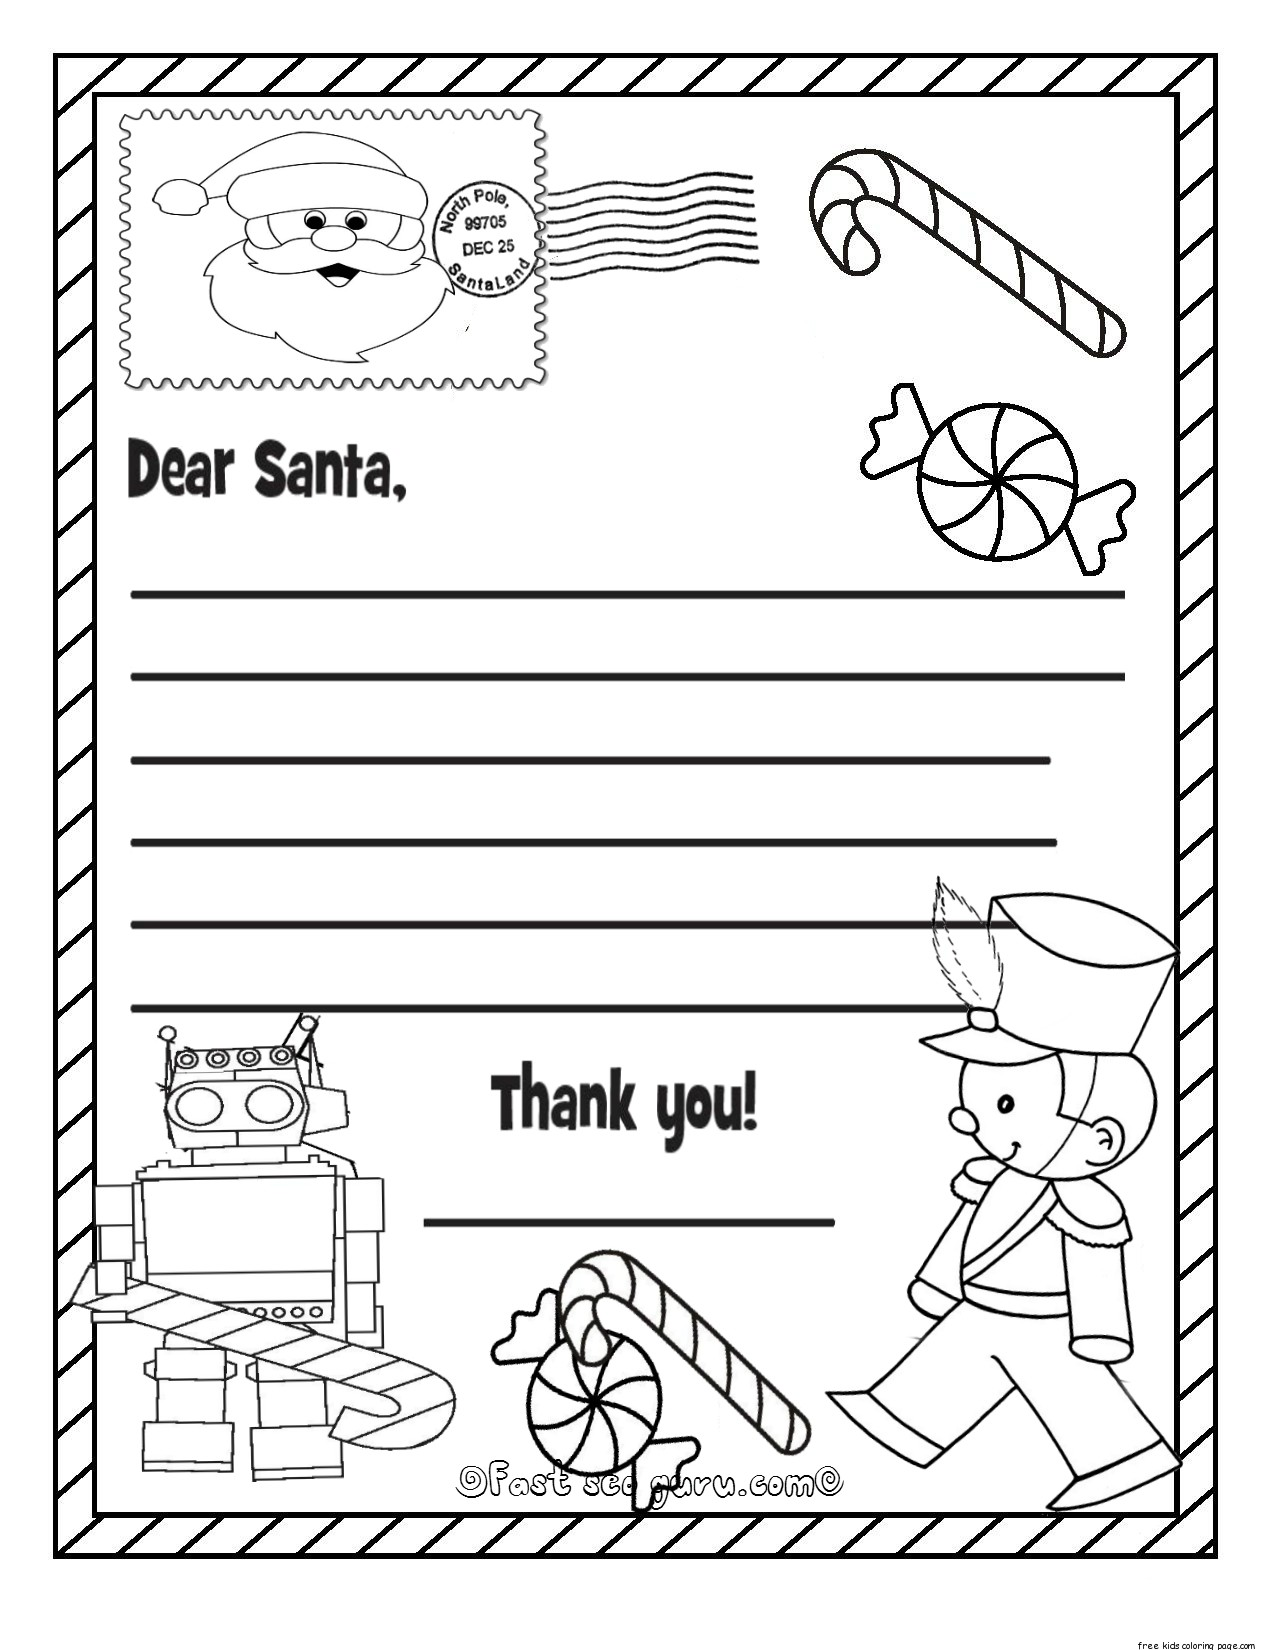 Printable Christmas Wish List To For Kids Kidsfree  Kids Christmas List Template